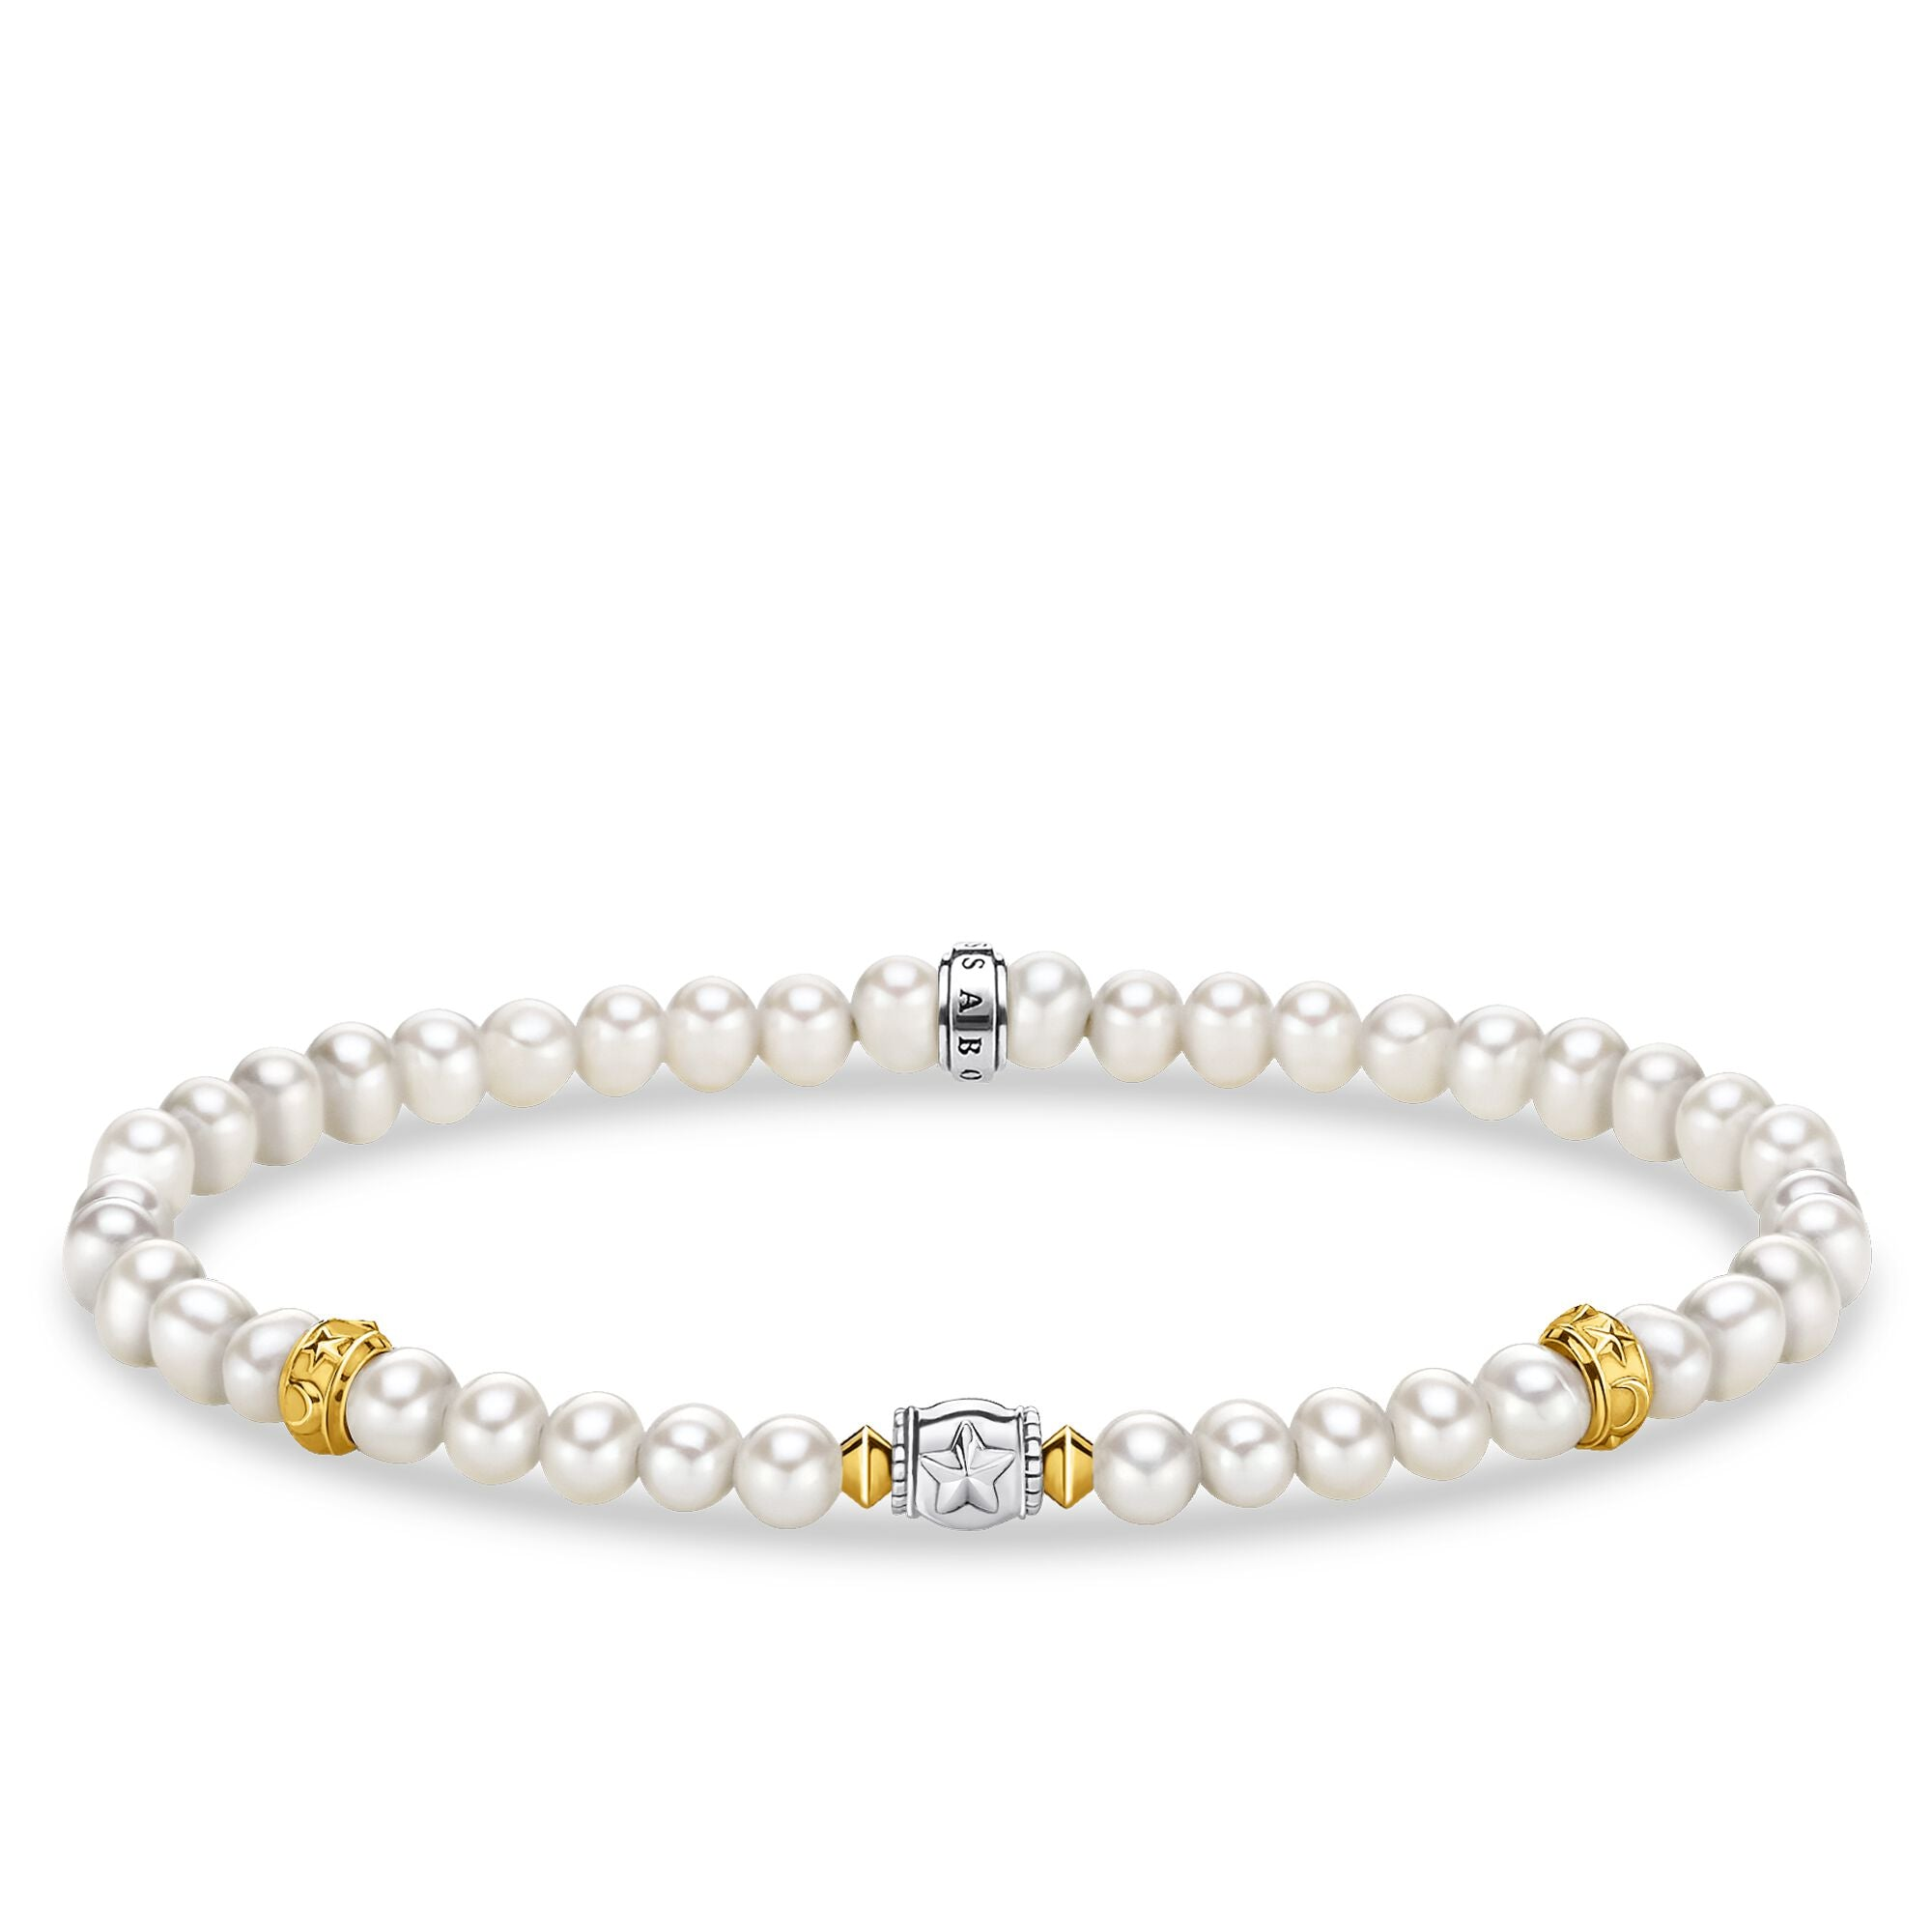 Thomas Sabo Pearls With Crecent Moon rannekoru A1979-430-14-L17